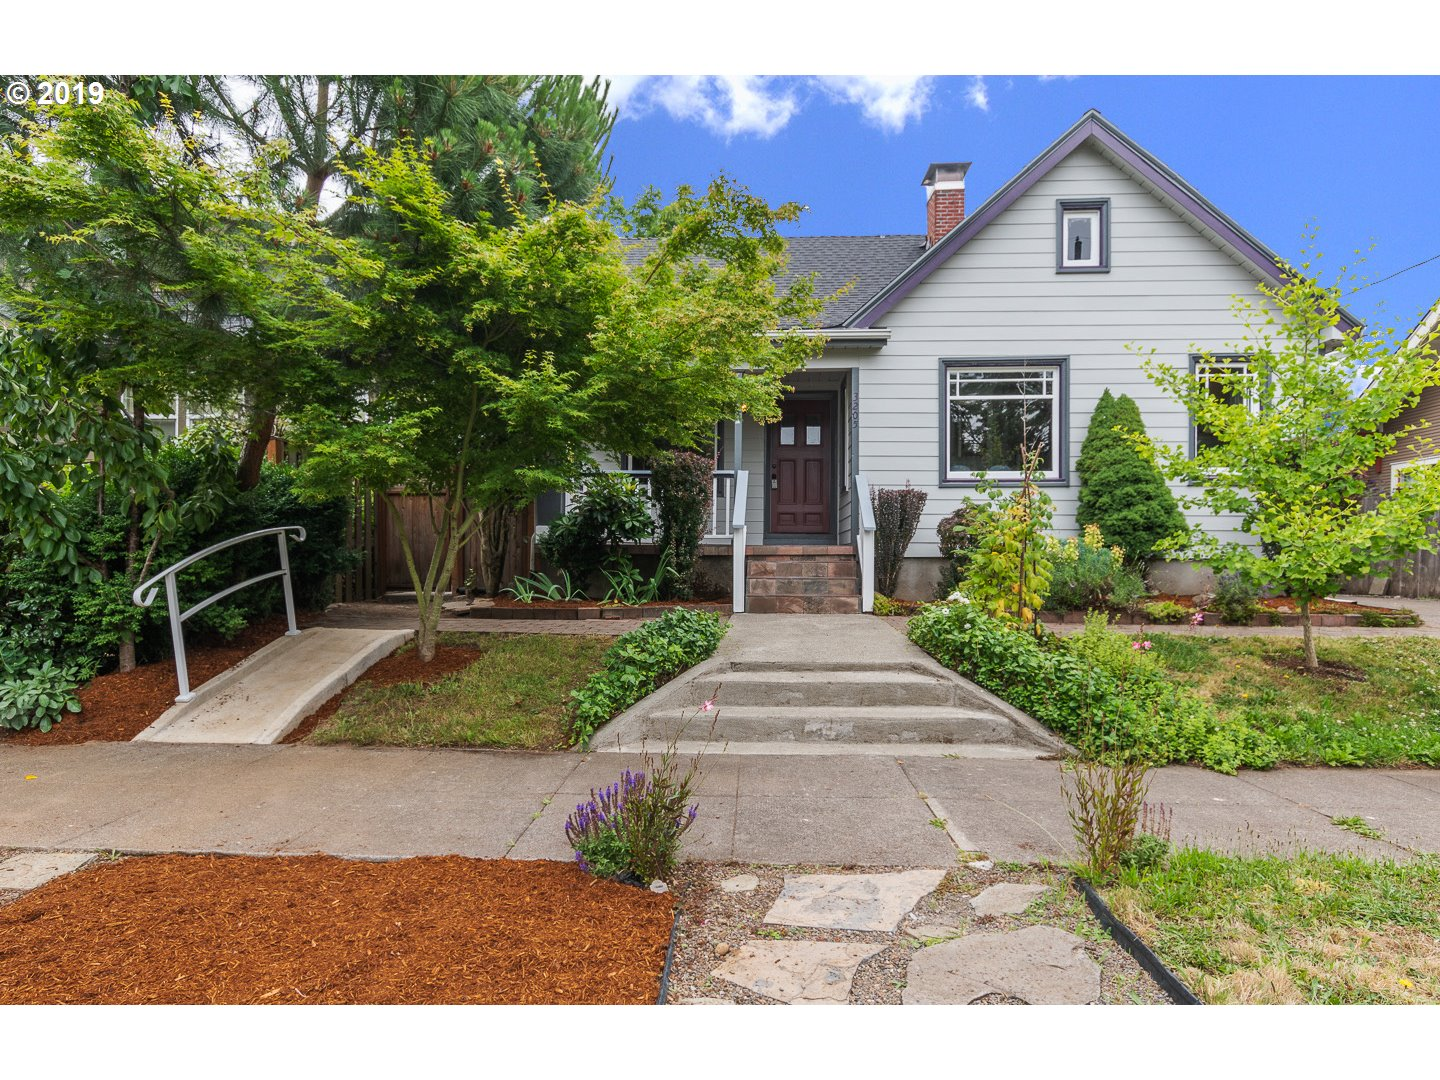 3205 NE 75TH AVE, Portland OR 97213